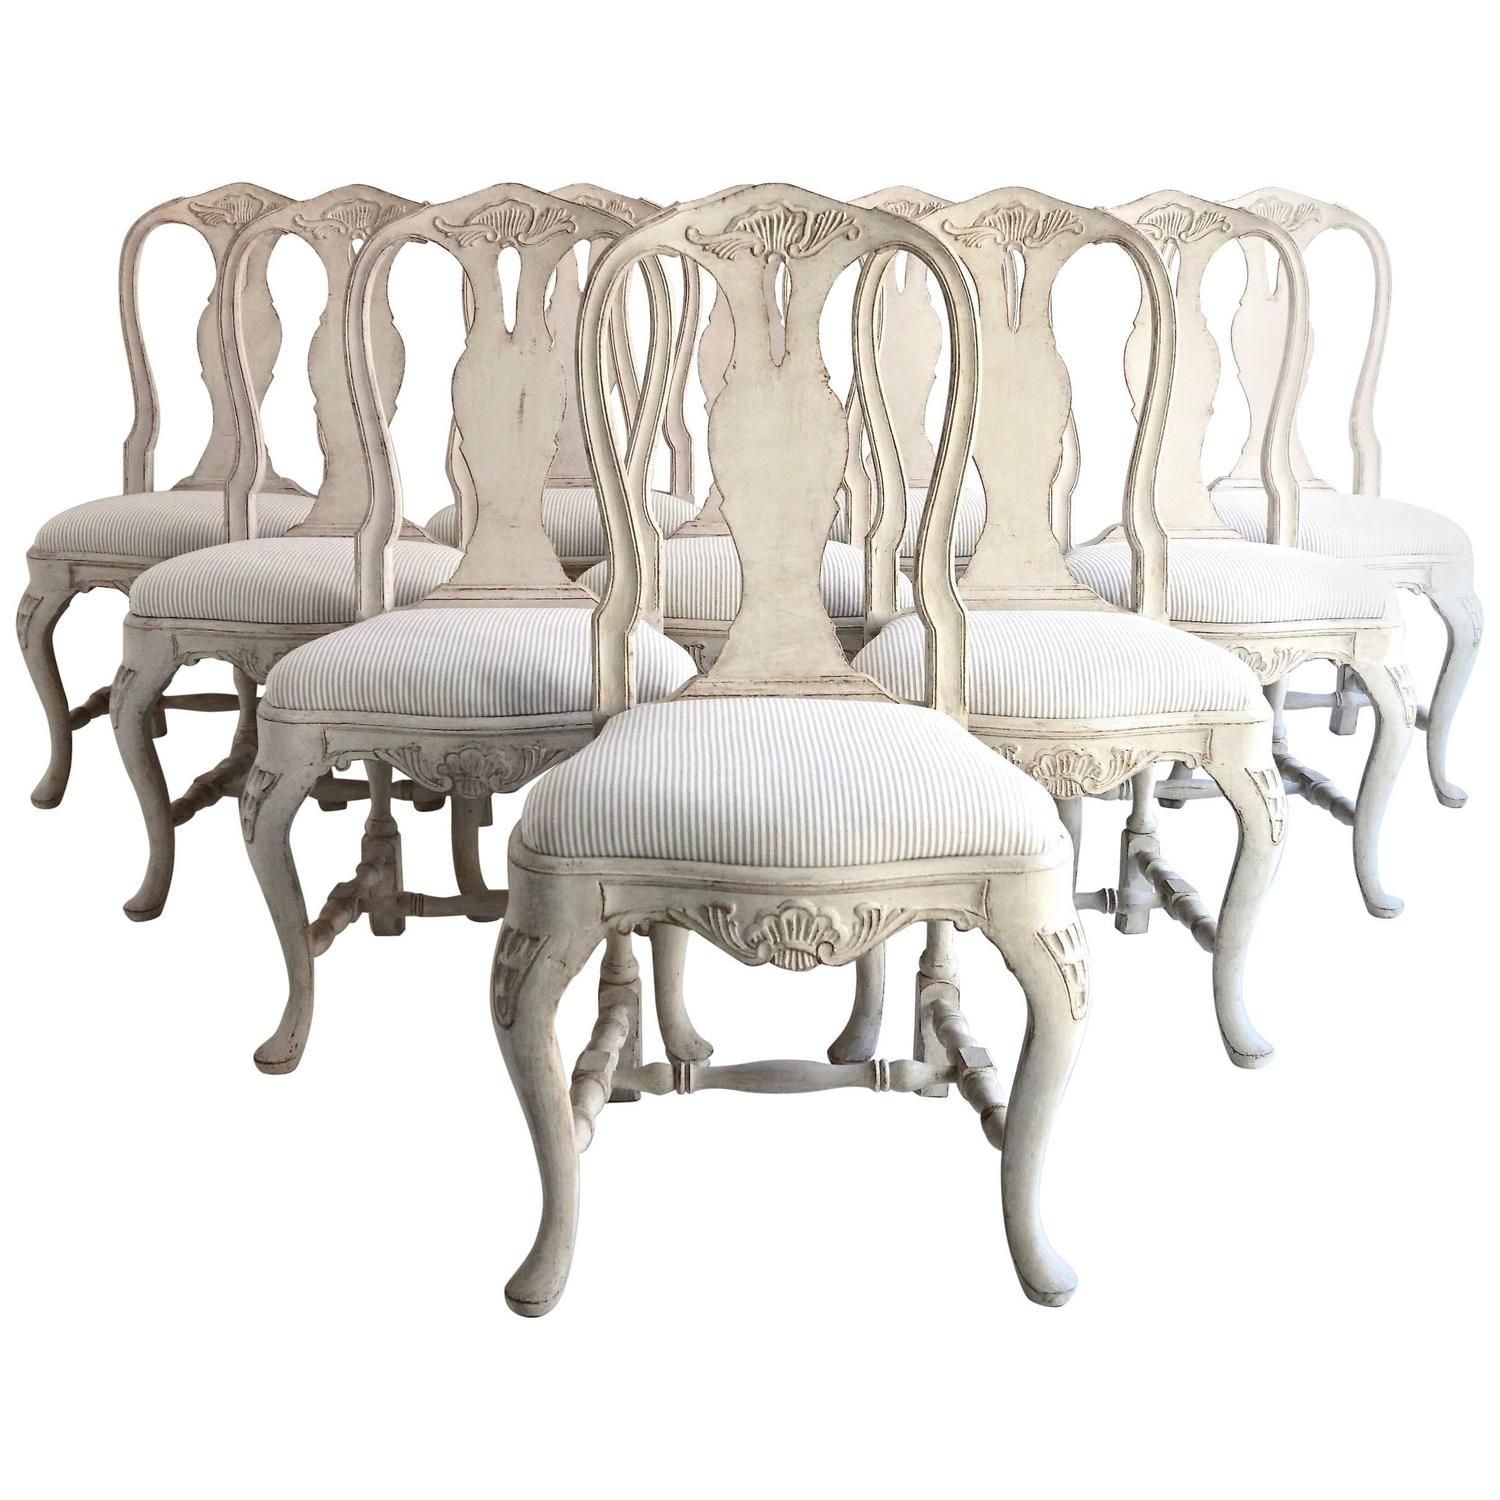 of Ten Antique Swedish Rococo Style Dining Chairs